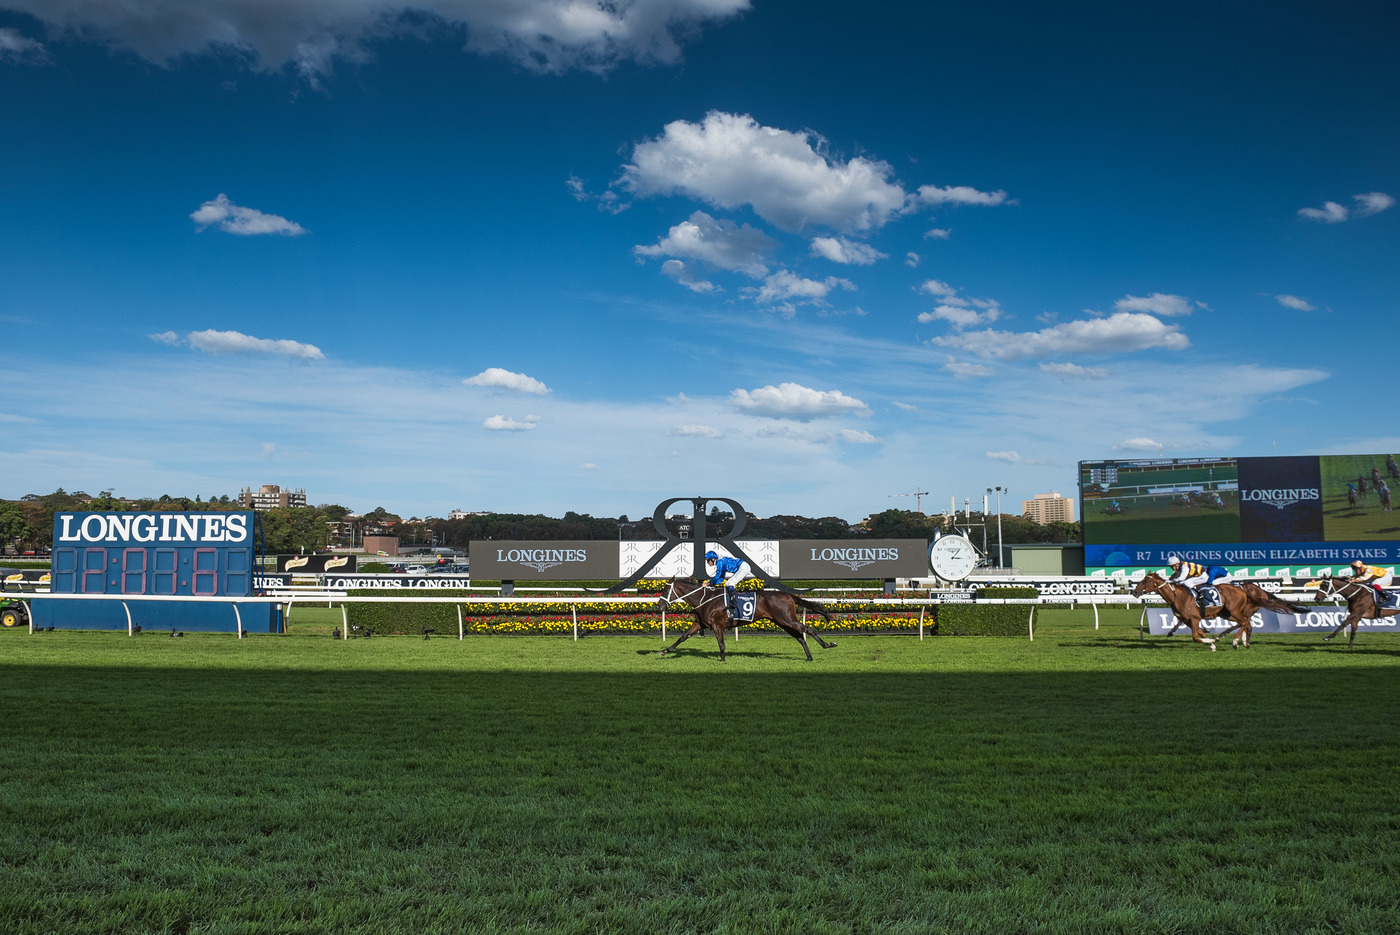 Longines Flat Racing Event: Winx claimed victory at the Longines Queen Elizabeth Stakes 1